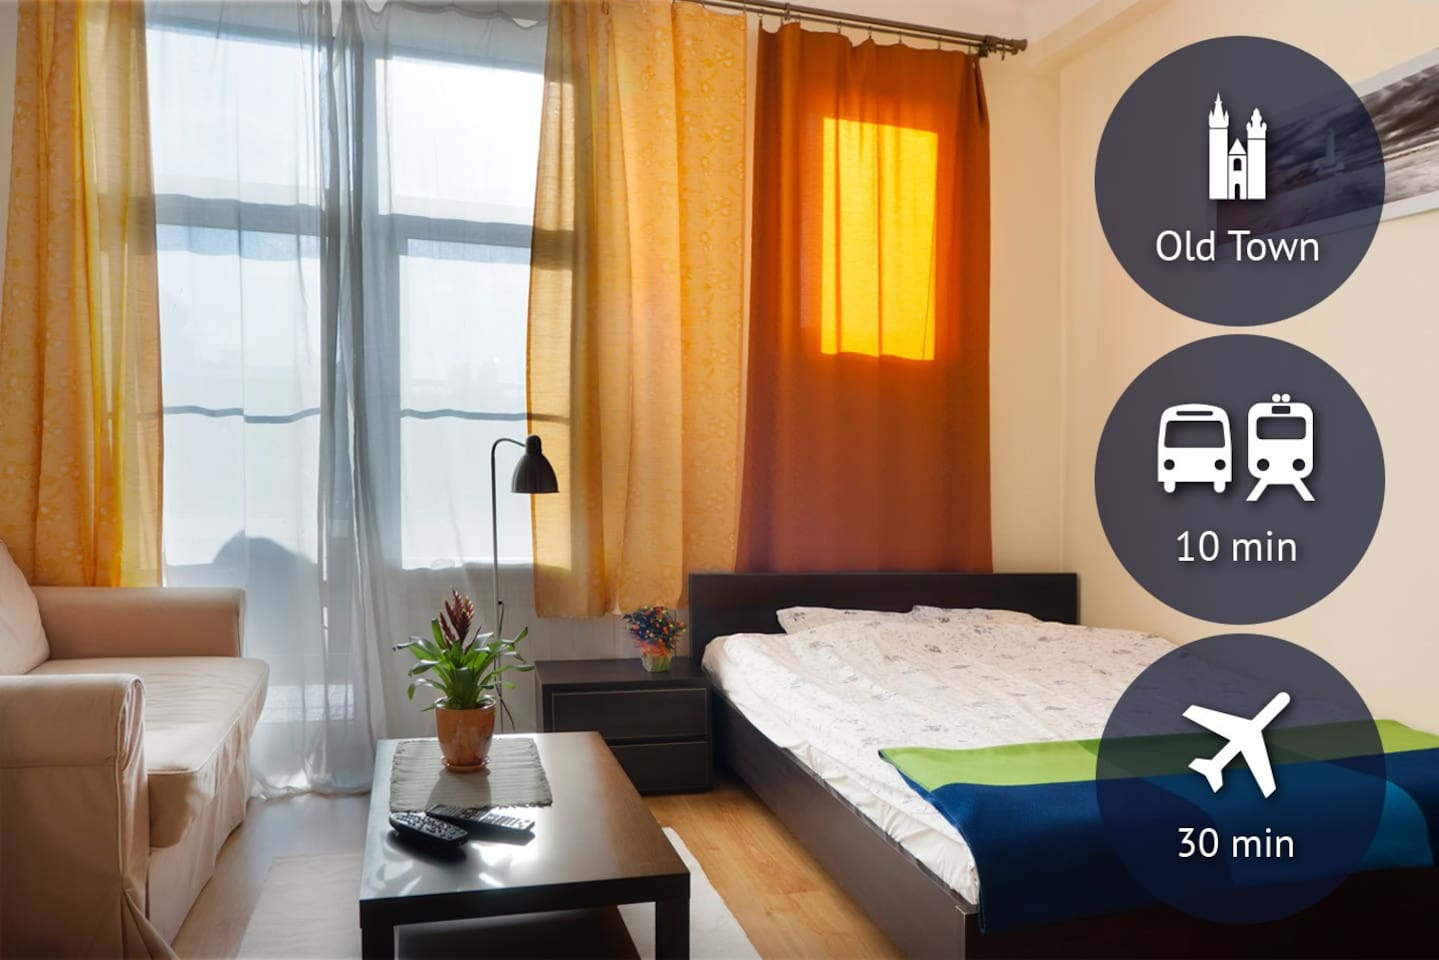 super comfortable apartment in the Old Town district, direct bus from/to the airport, 10 min from/to the train/bus station